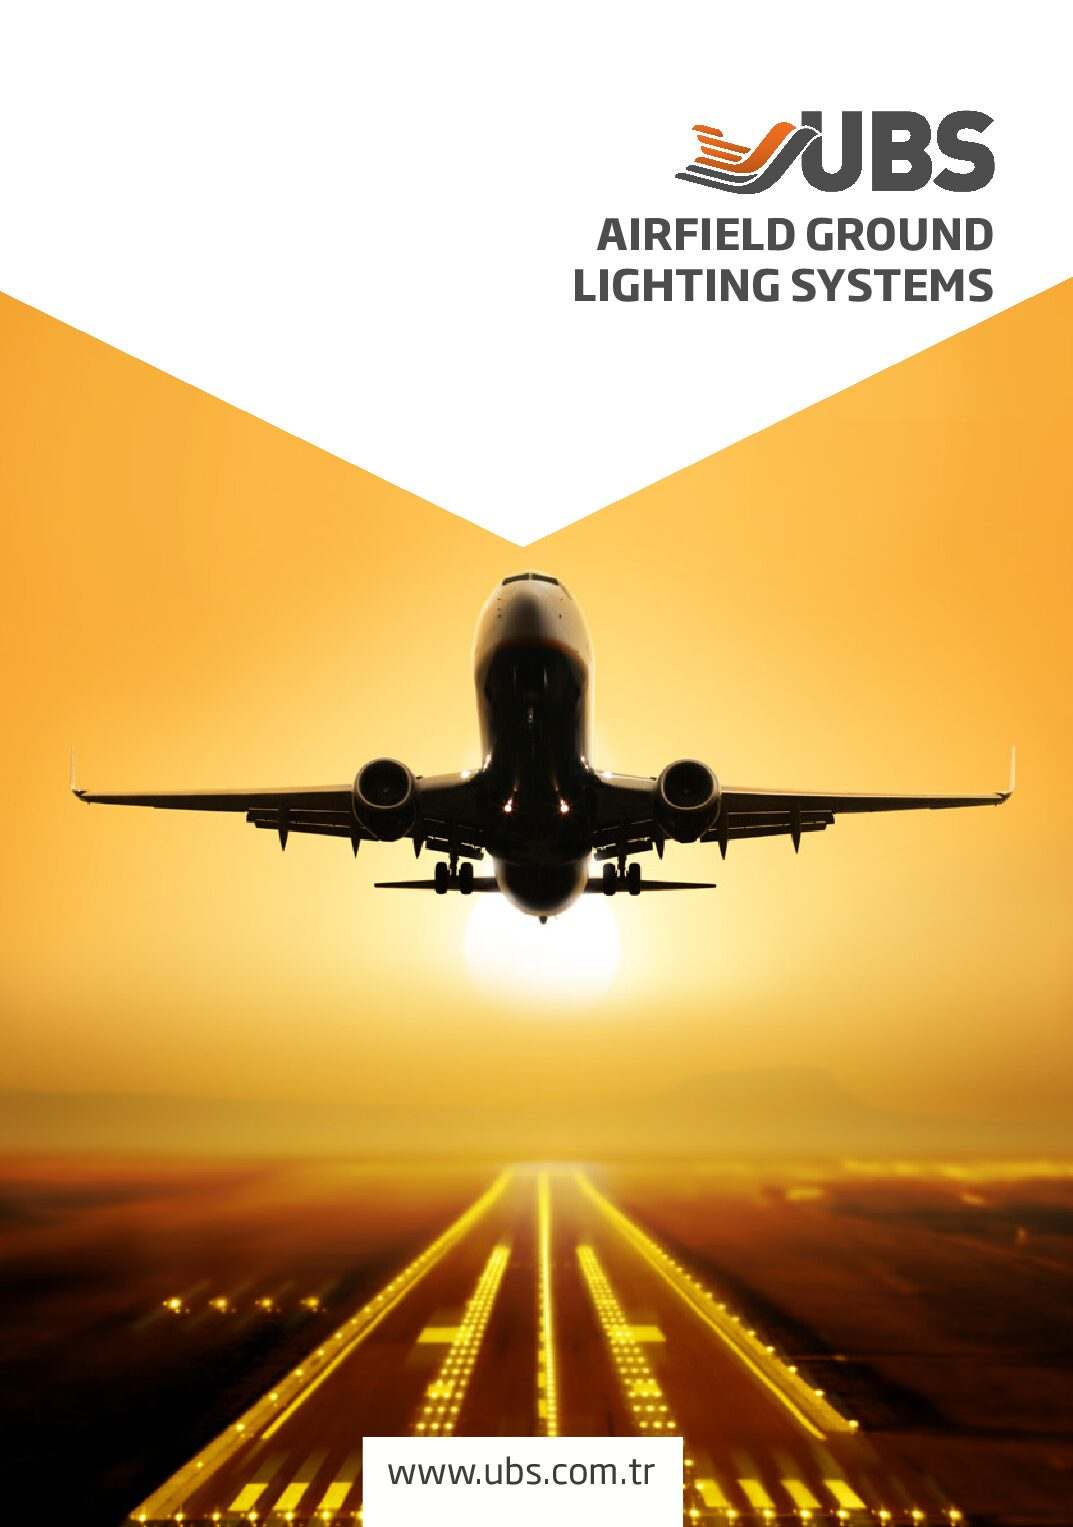 Airfield Ground Lighting Systems (AFL)